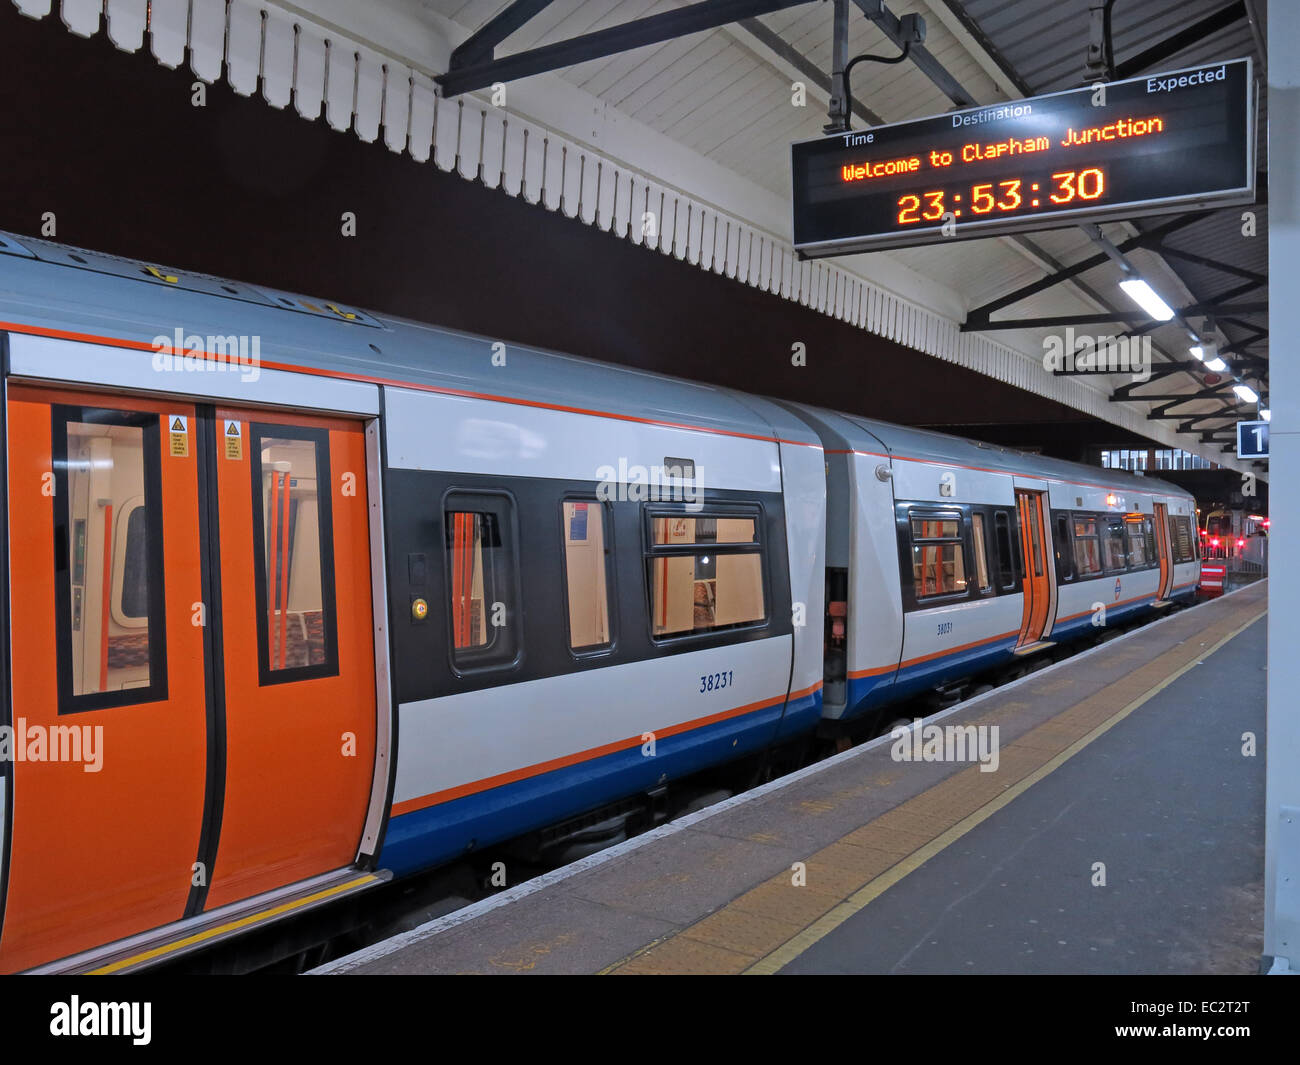 Great,Britain,GB,United,Kingdom,railways,train,overground,dusk,Battersea,south,night,Londons busiest,England,UK,platform,empty,doors,closed,dark,nearly,midnight,nighttime,transport,underground,fear,danger,of,travelling,at,safety,on,public,GoTonySmith,Buy Pictures of,Buy Images Of